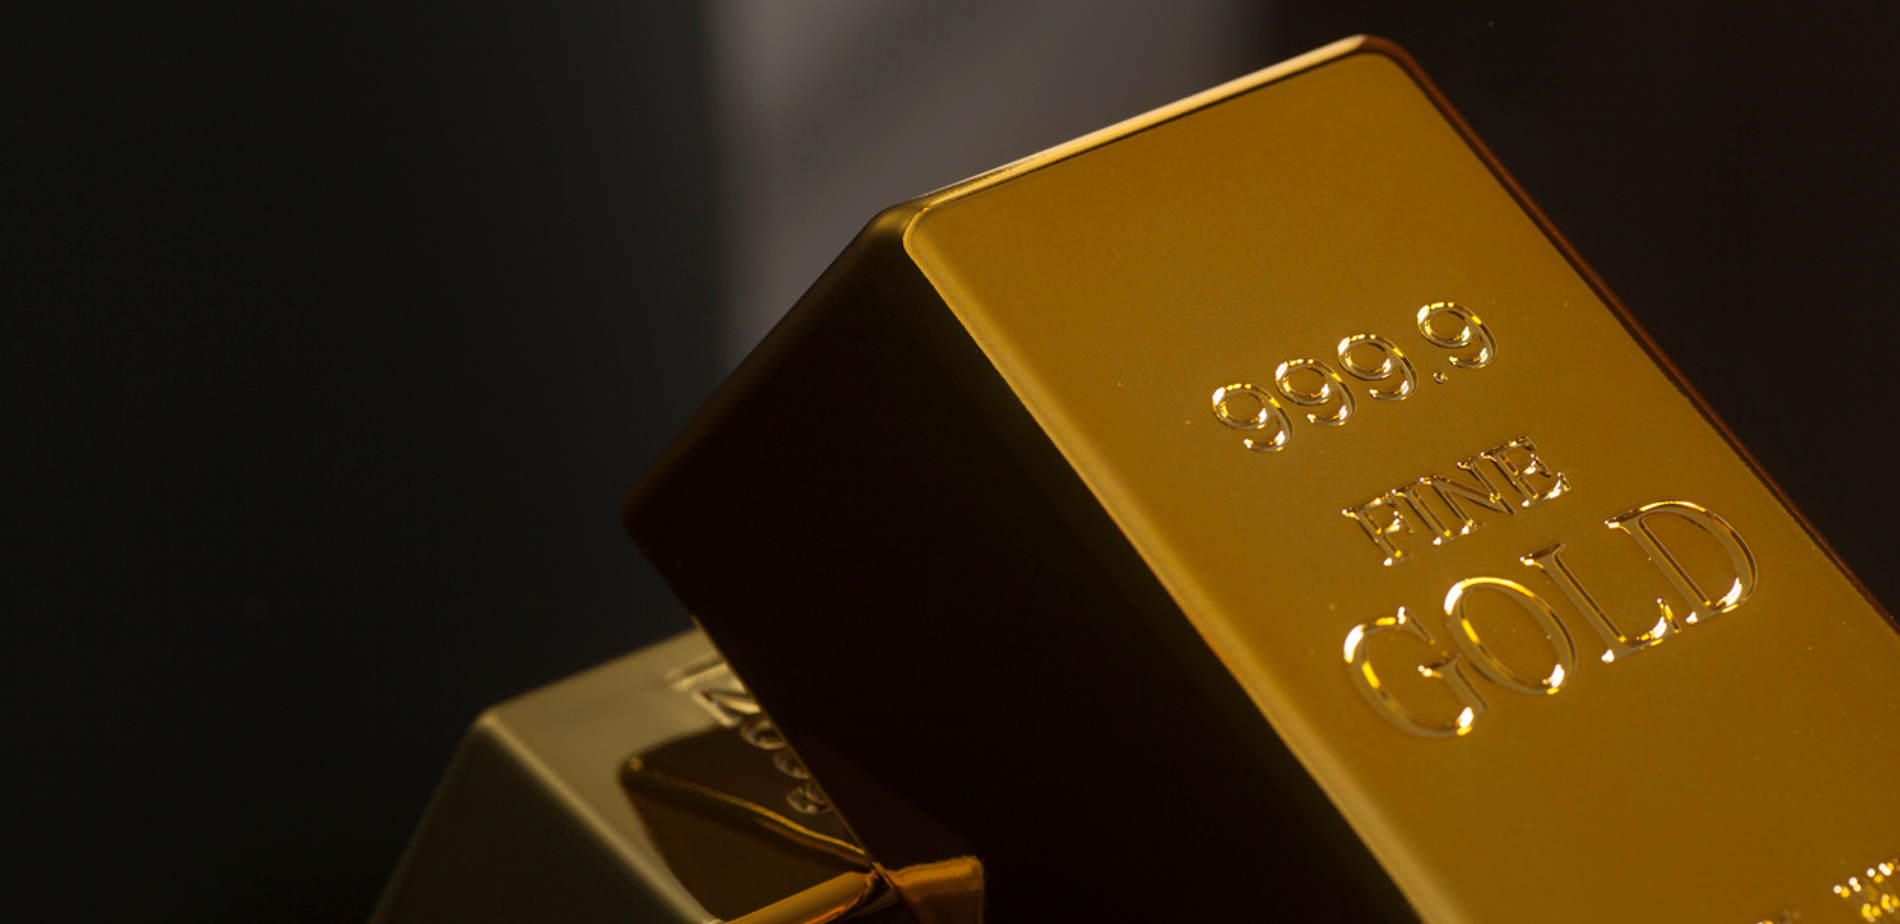 Lombardi Letter S Gold Price Forecast For Next 10 Years